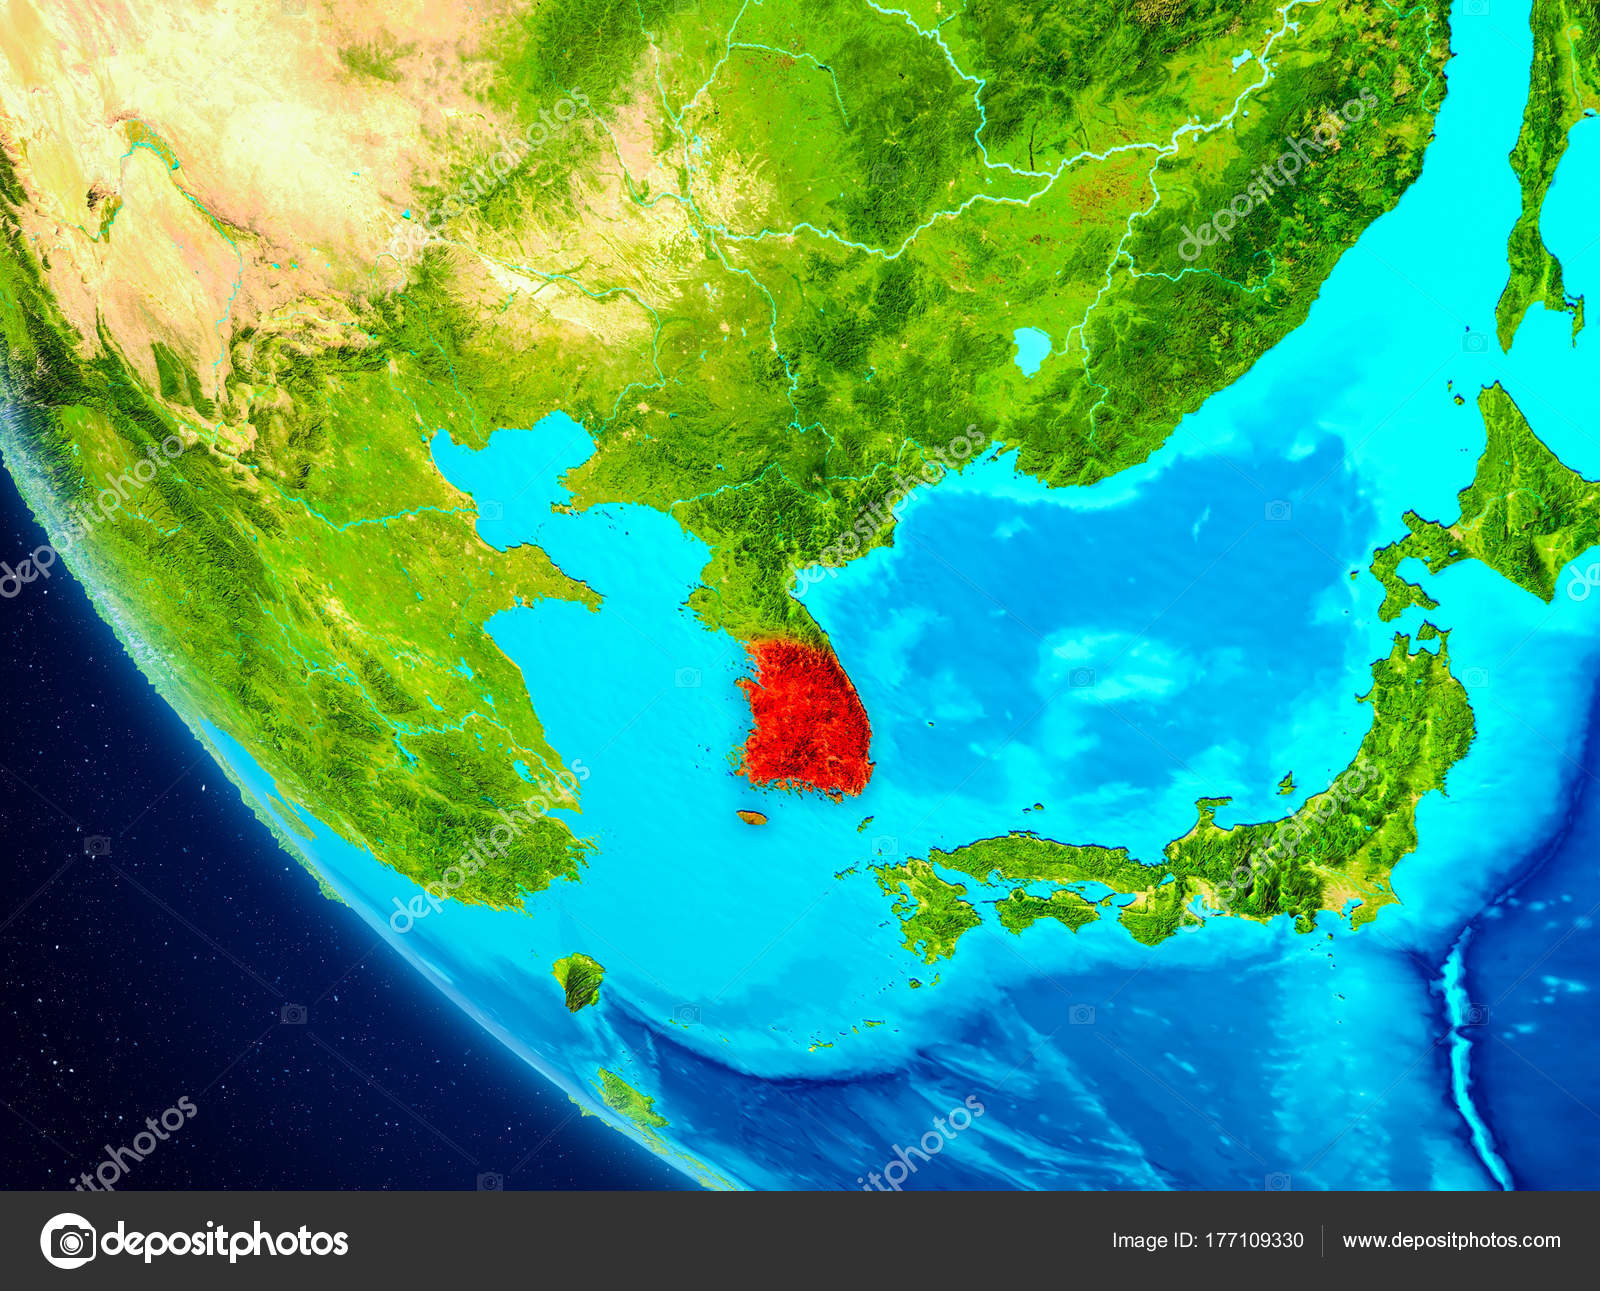 South korea on globe from space stock photo tomiger 177109330 south korea highlighted in red on planet earth 3d illustration elements of this image furnished by nasa photo by tomiger gumiabroncs Choice Image